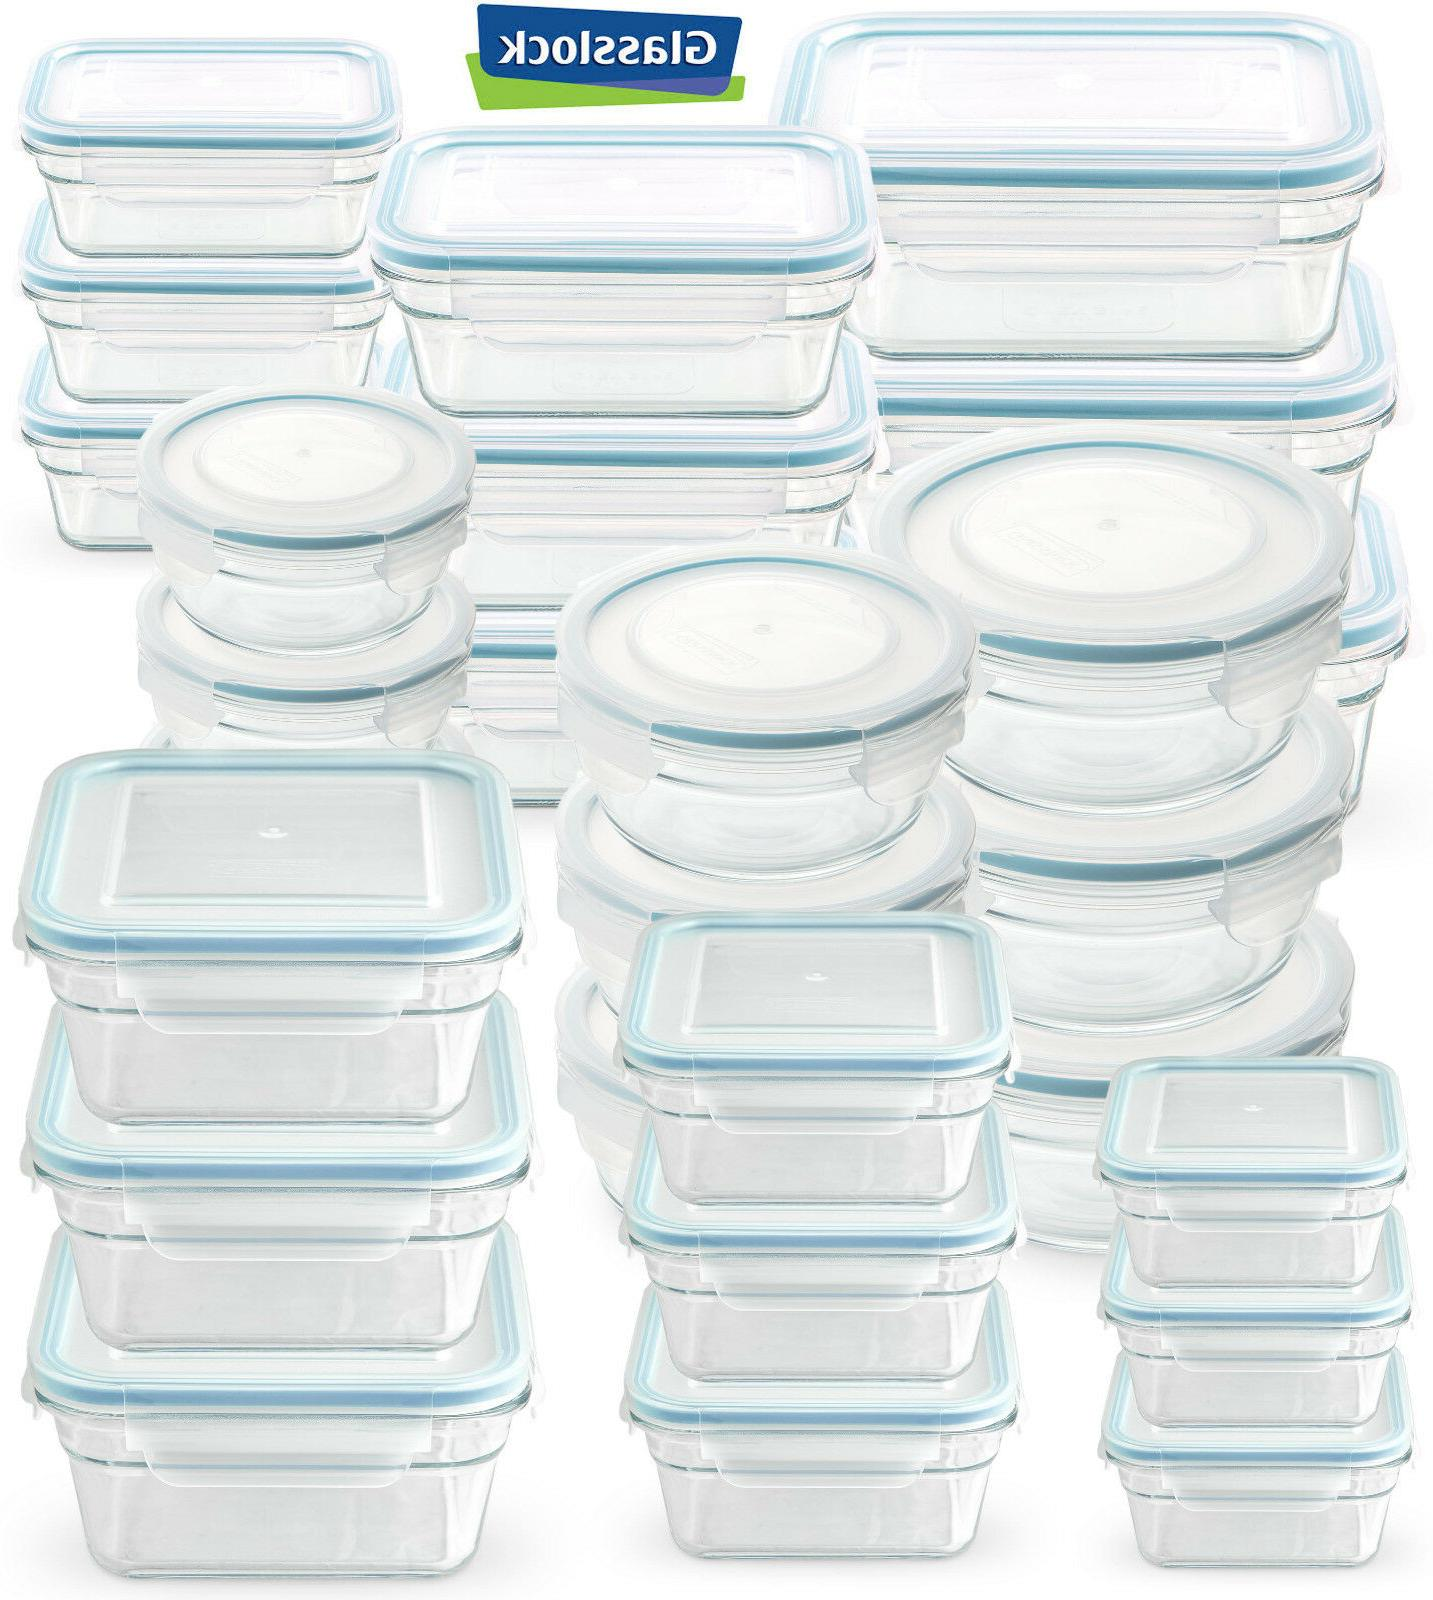 food storage container microwave and oven safe